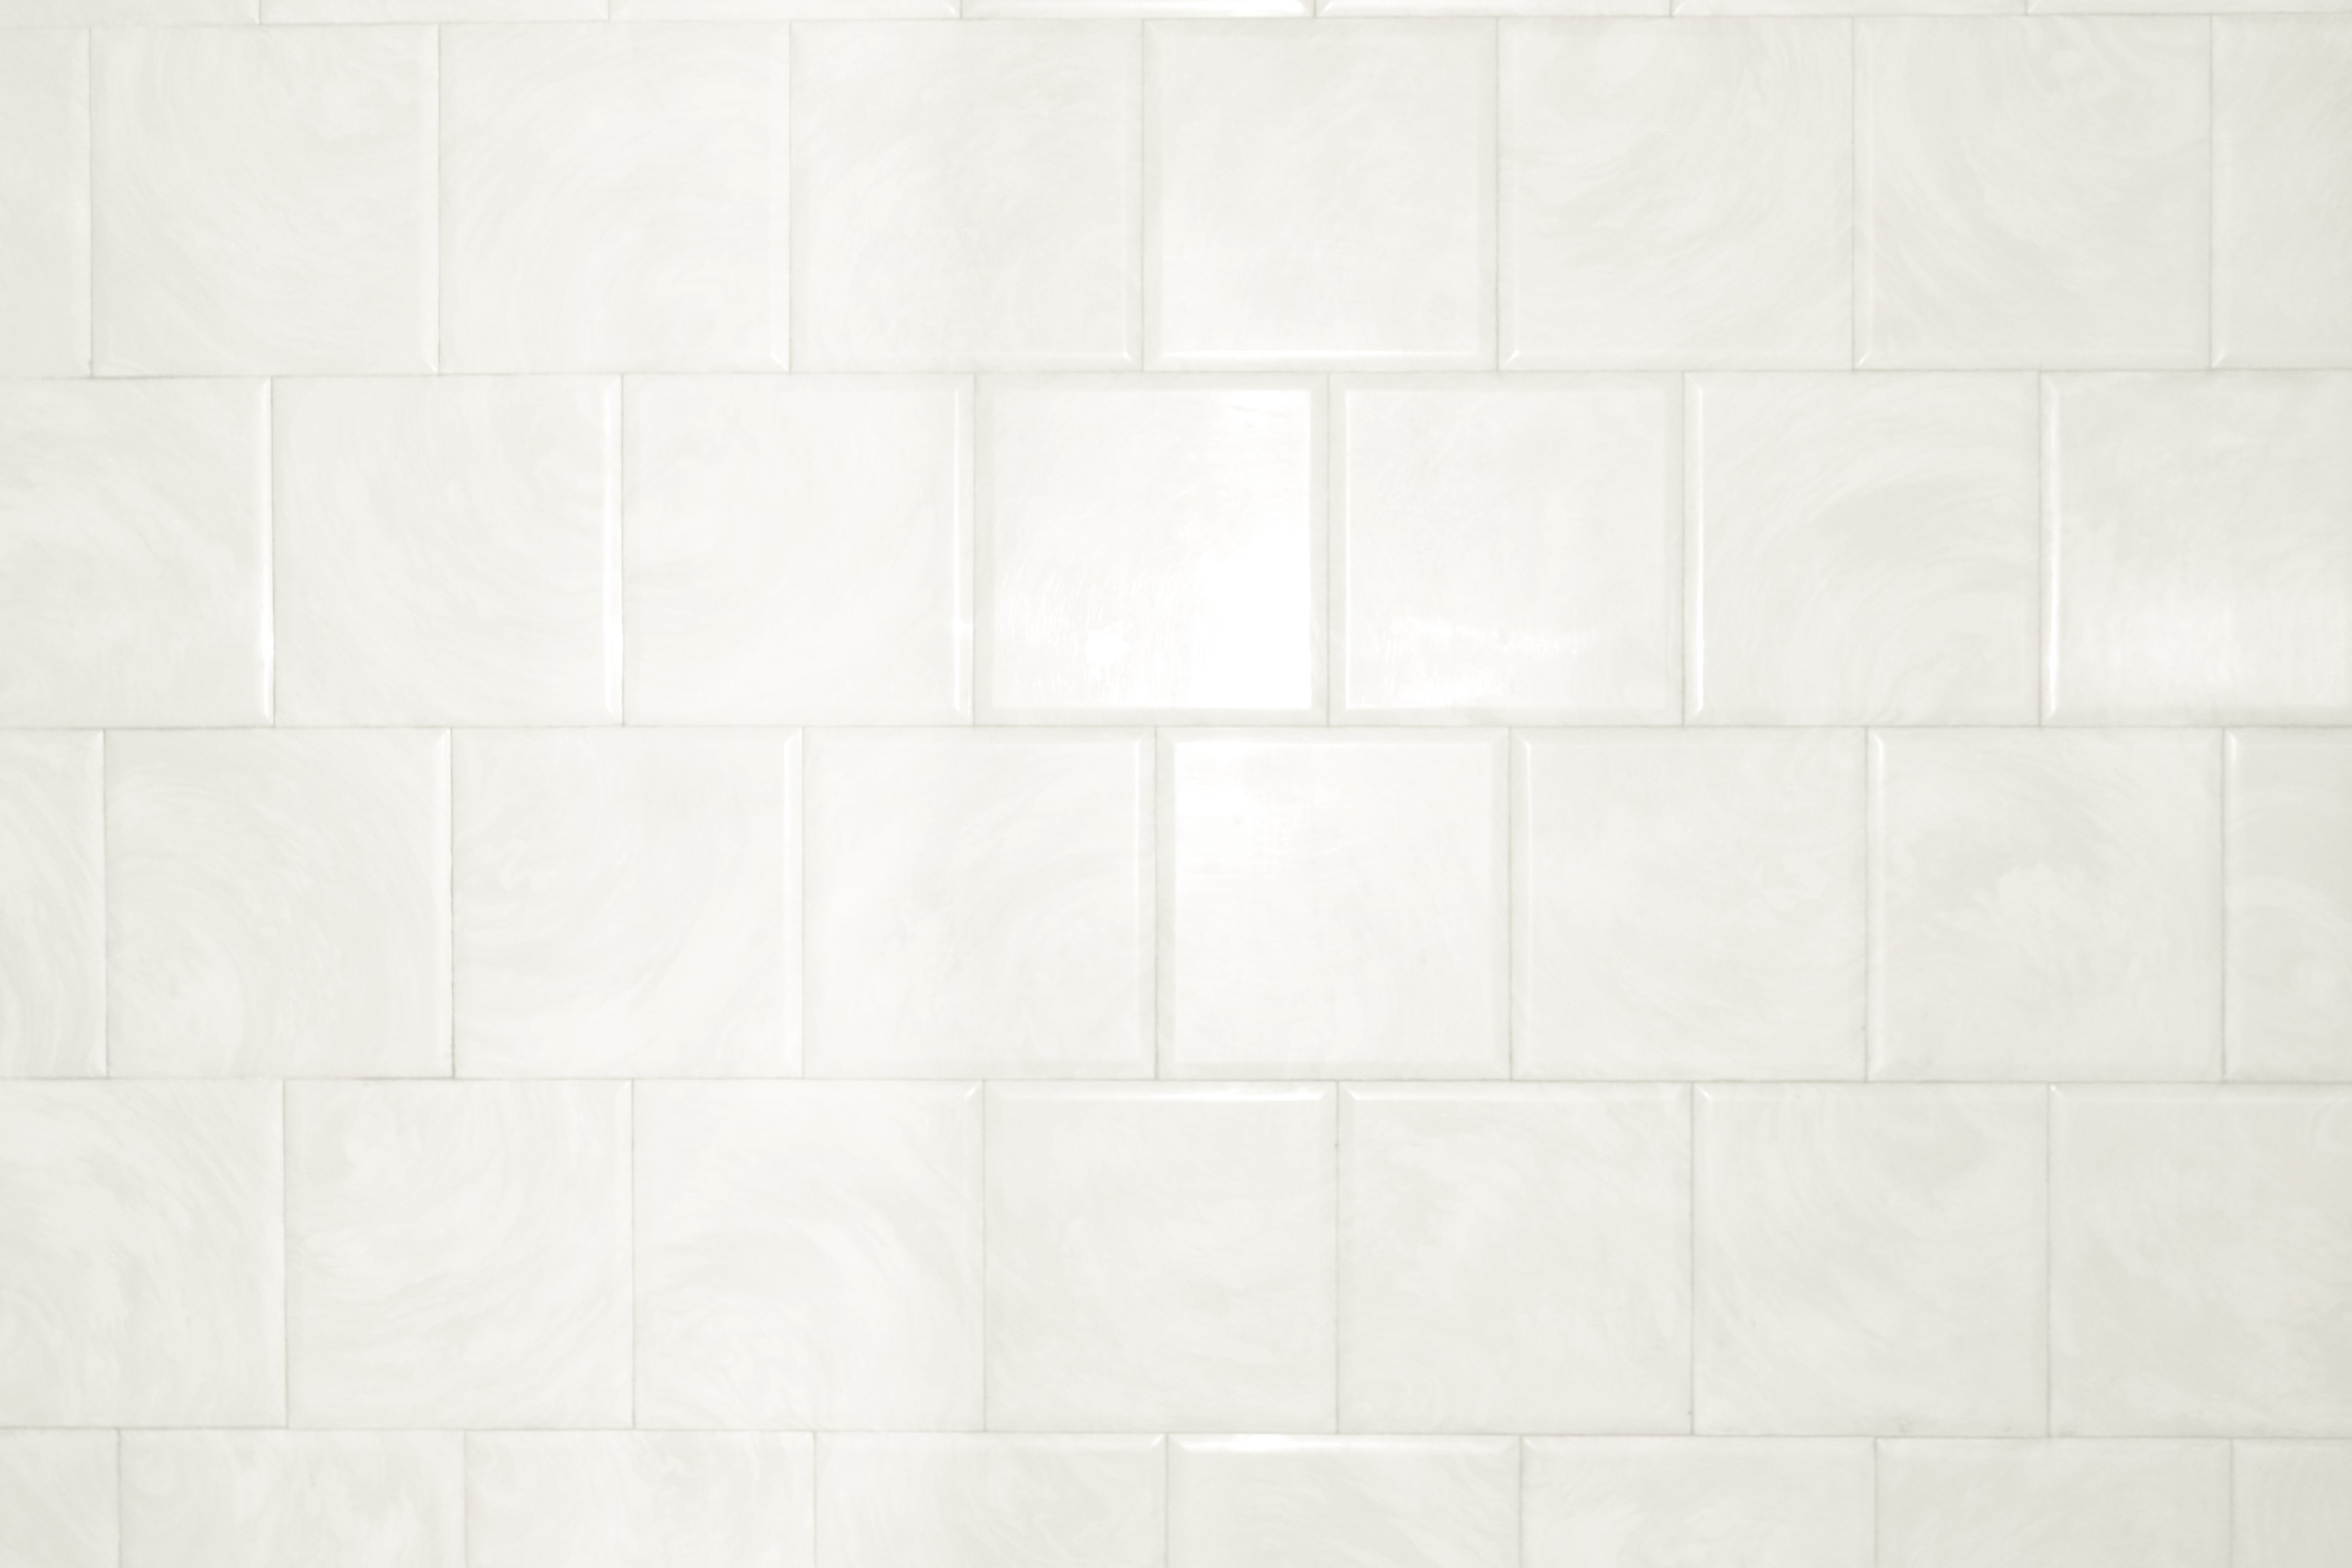 White Bathroom Floor Tiles Texture With Unique Trend | eyagci.com